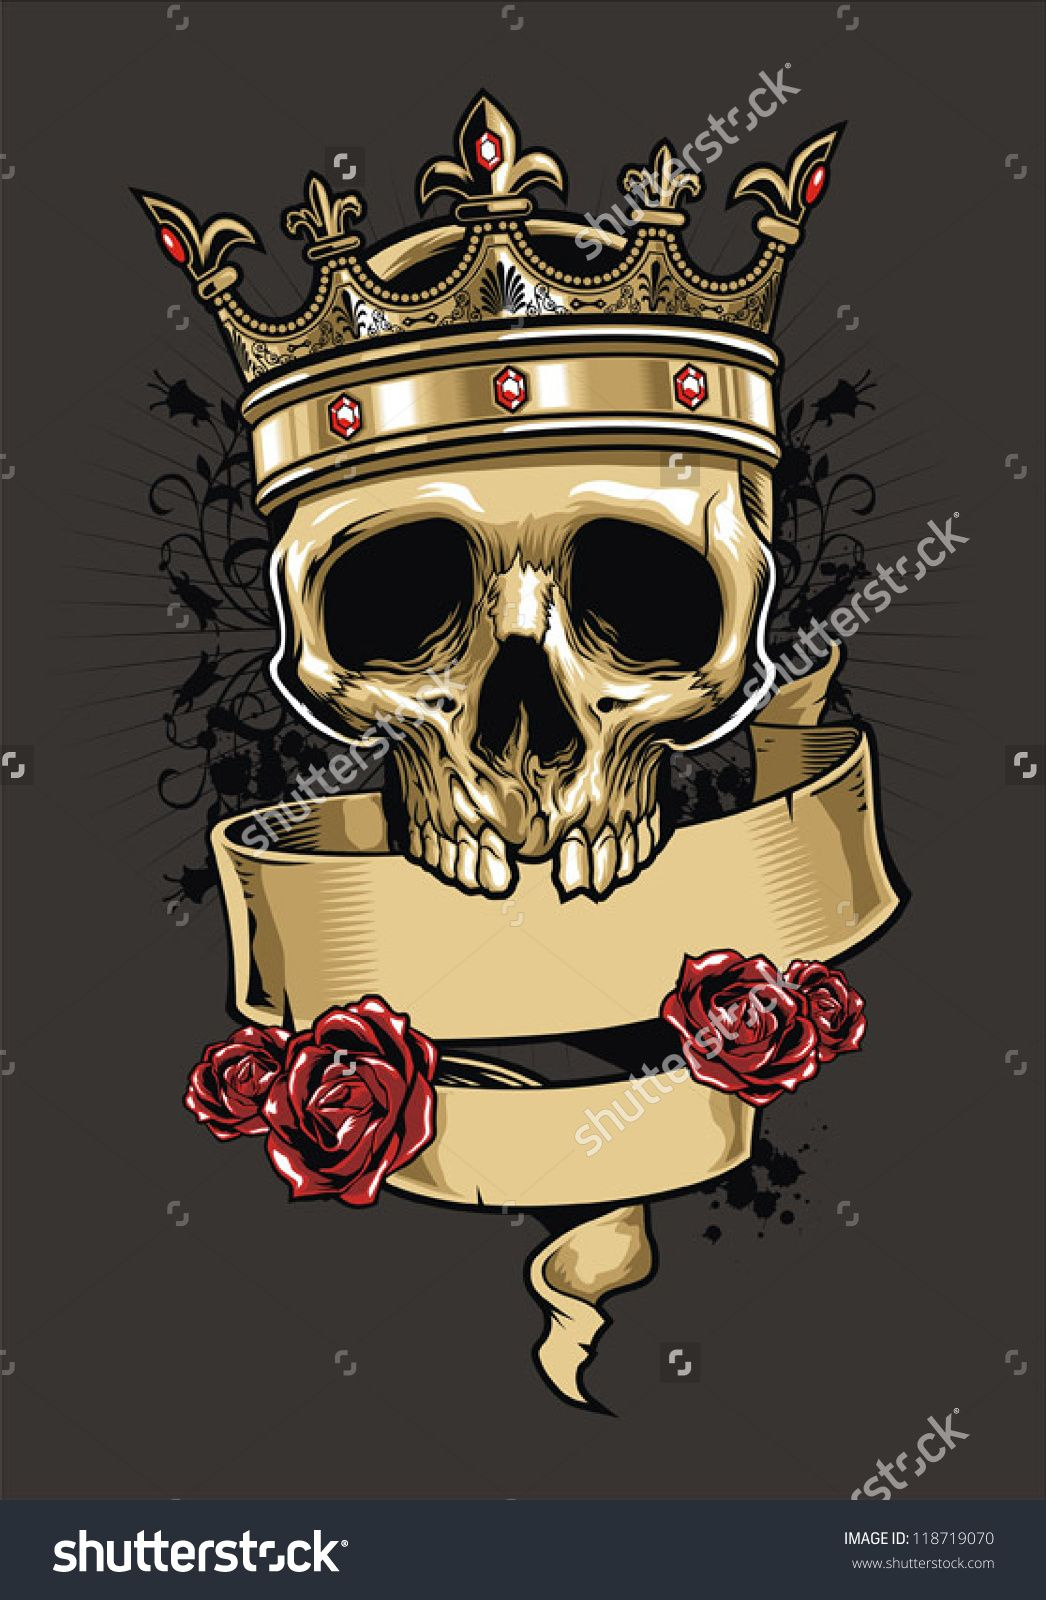 Vector Skull Wearing A King Crown - 118719070 : Shutterstock ...